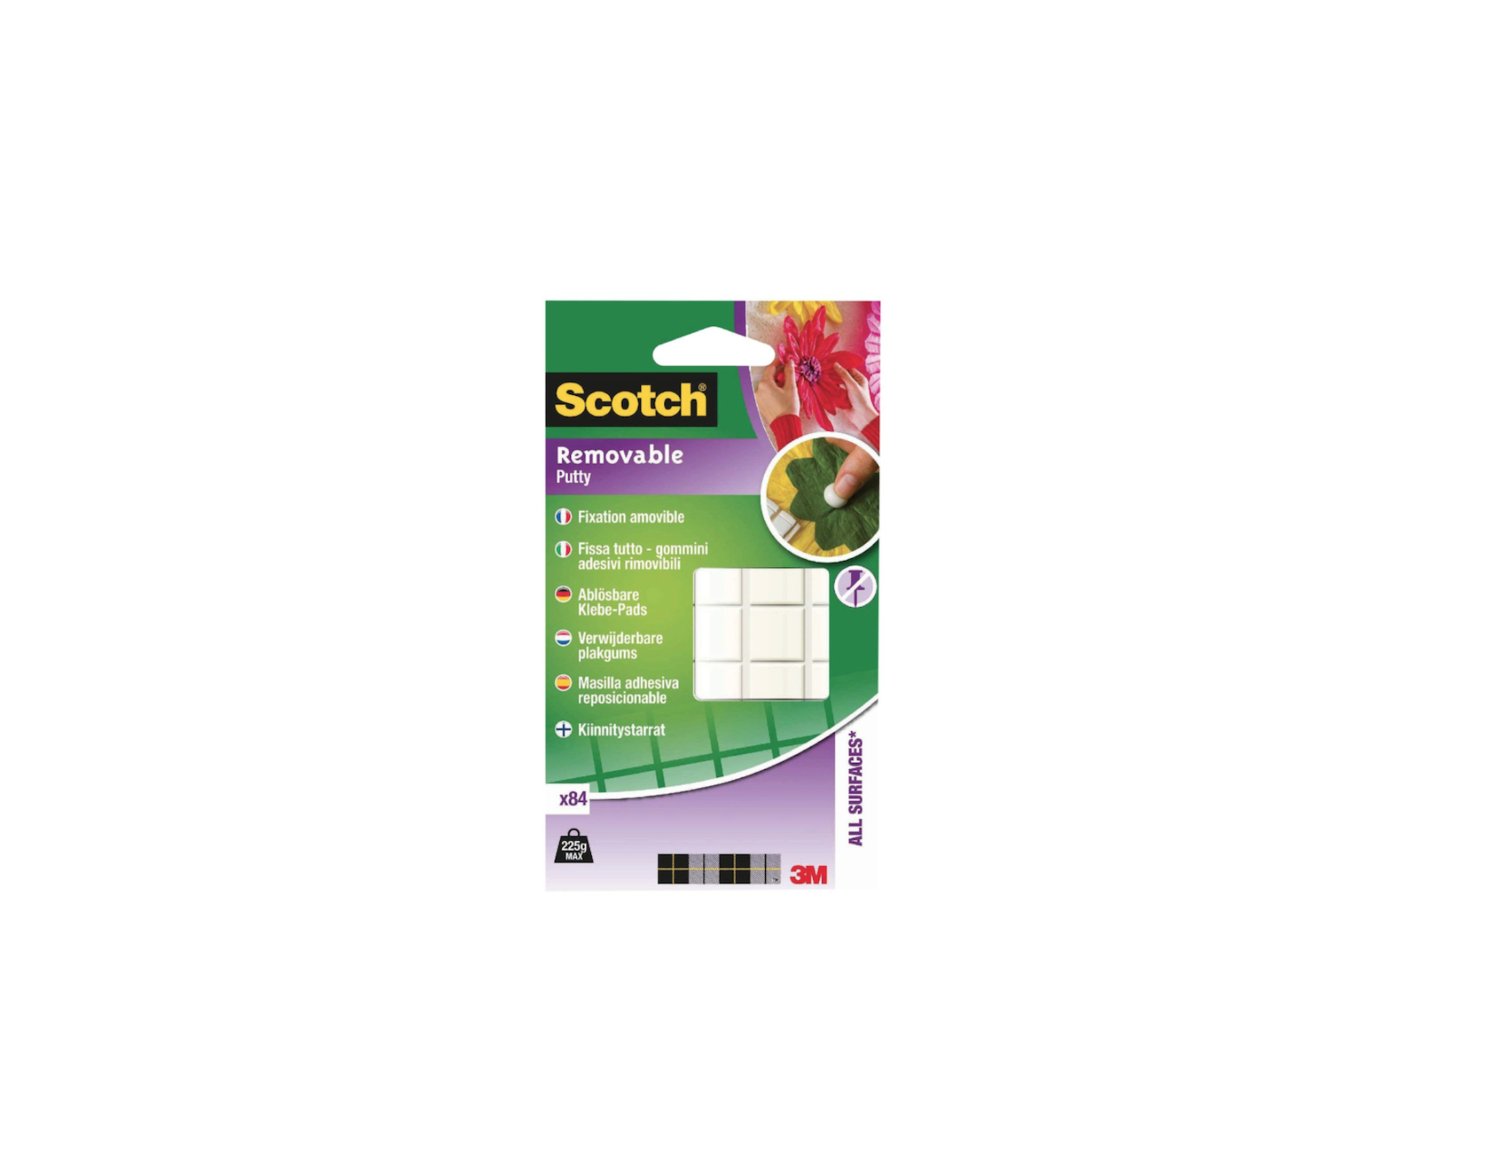 SCOTCH 3M PATE A FIXATION REMOVABLE ADHESIVE PADS DOUBLE FACE ADHESIF DECORATION HOME BRICOLAGE PRO 4046719281589 COMASOUND KARTEL CSK ONLINE